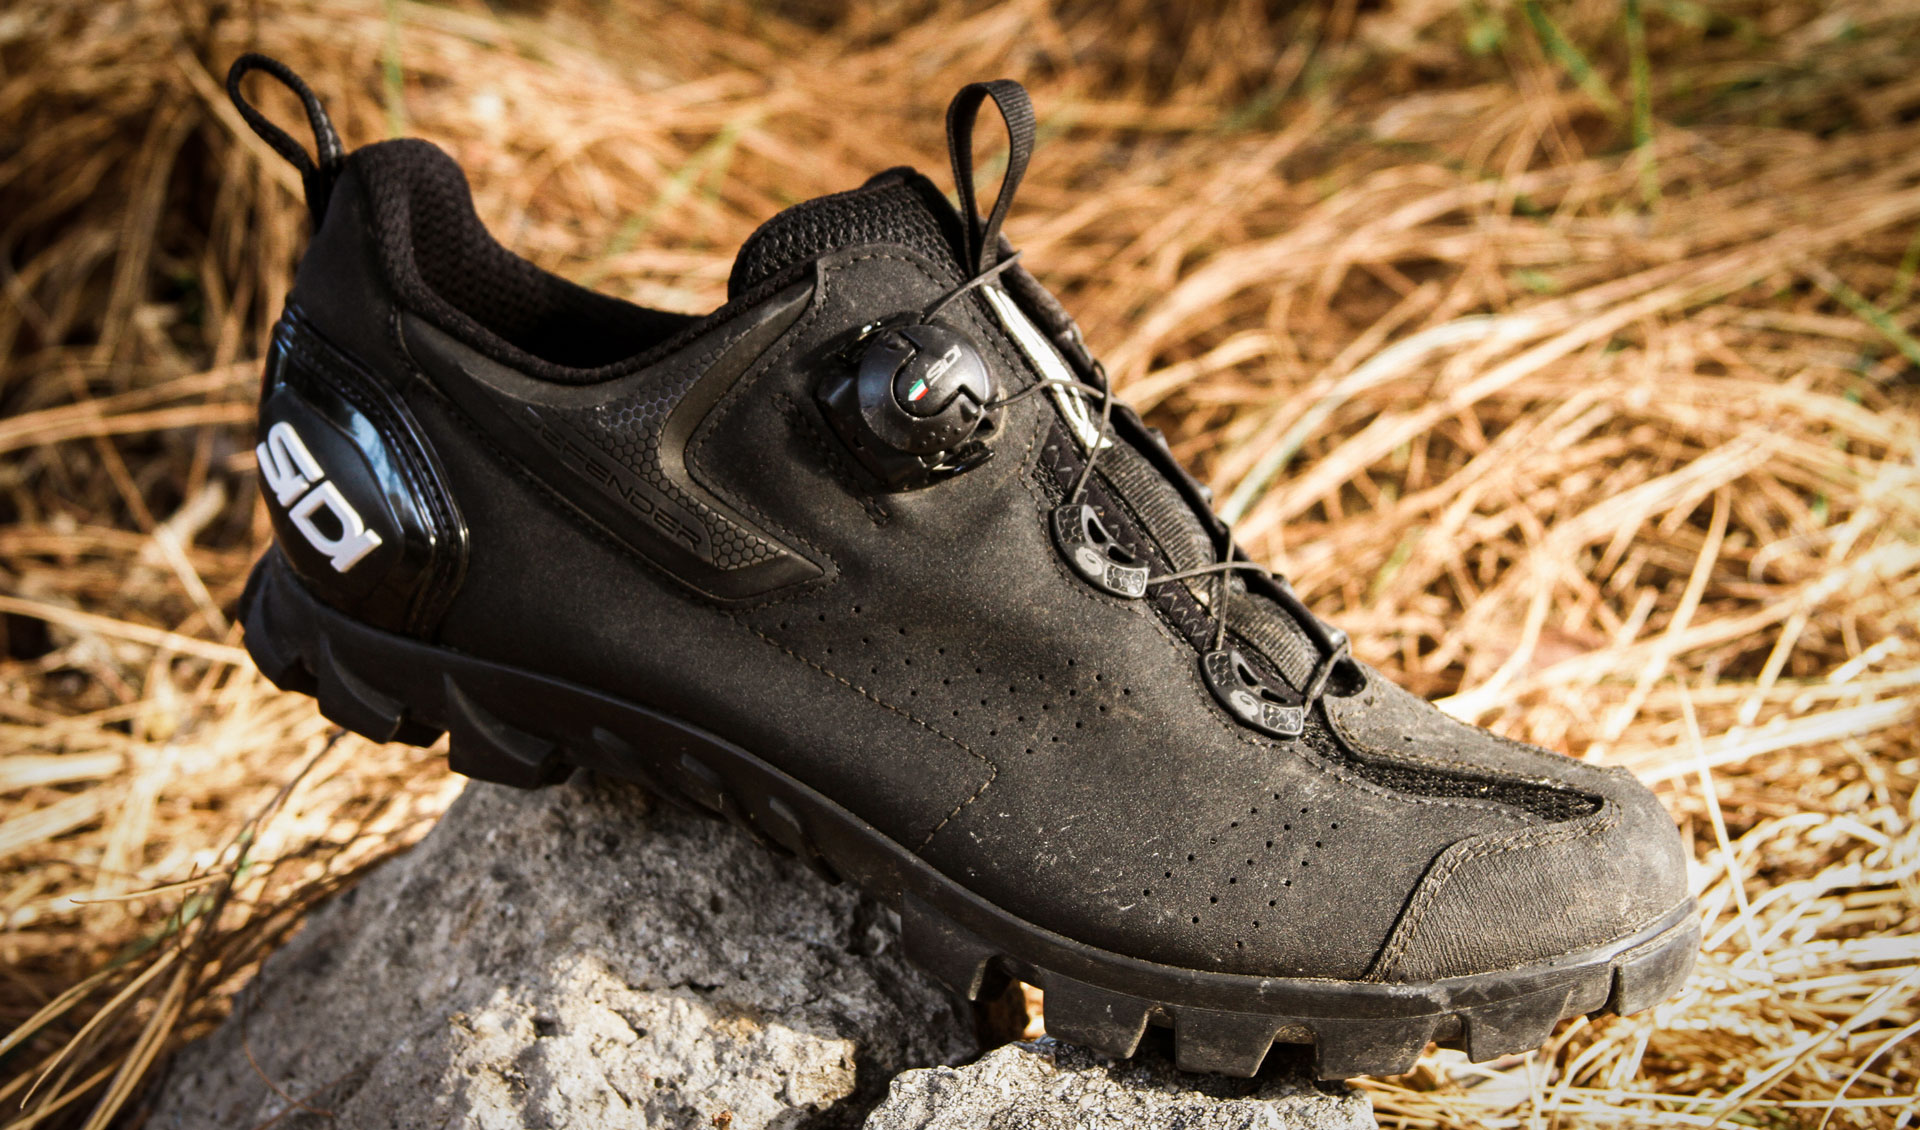 Sidi Defender 20 Clipless Shoe Review